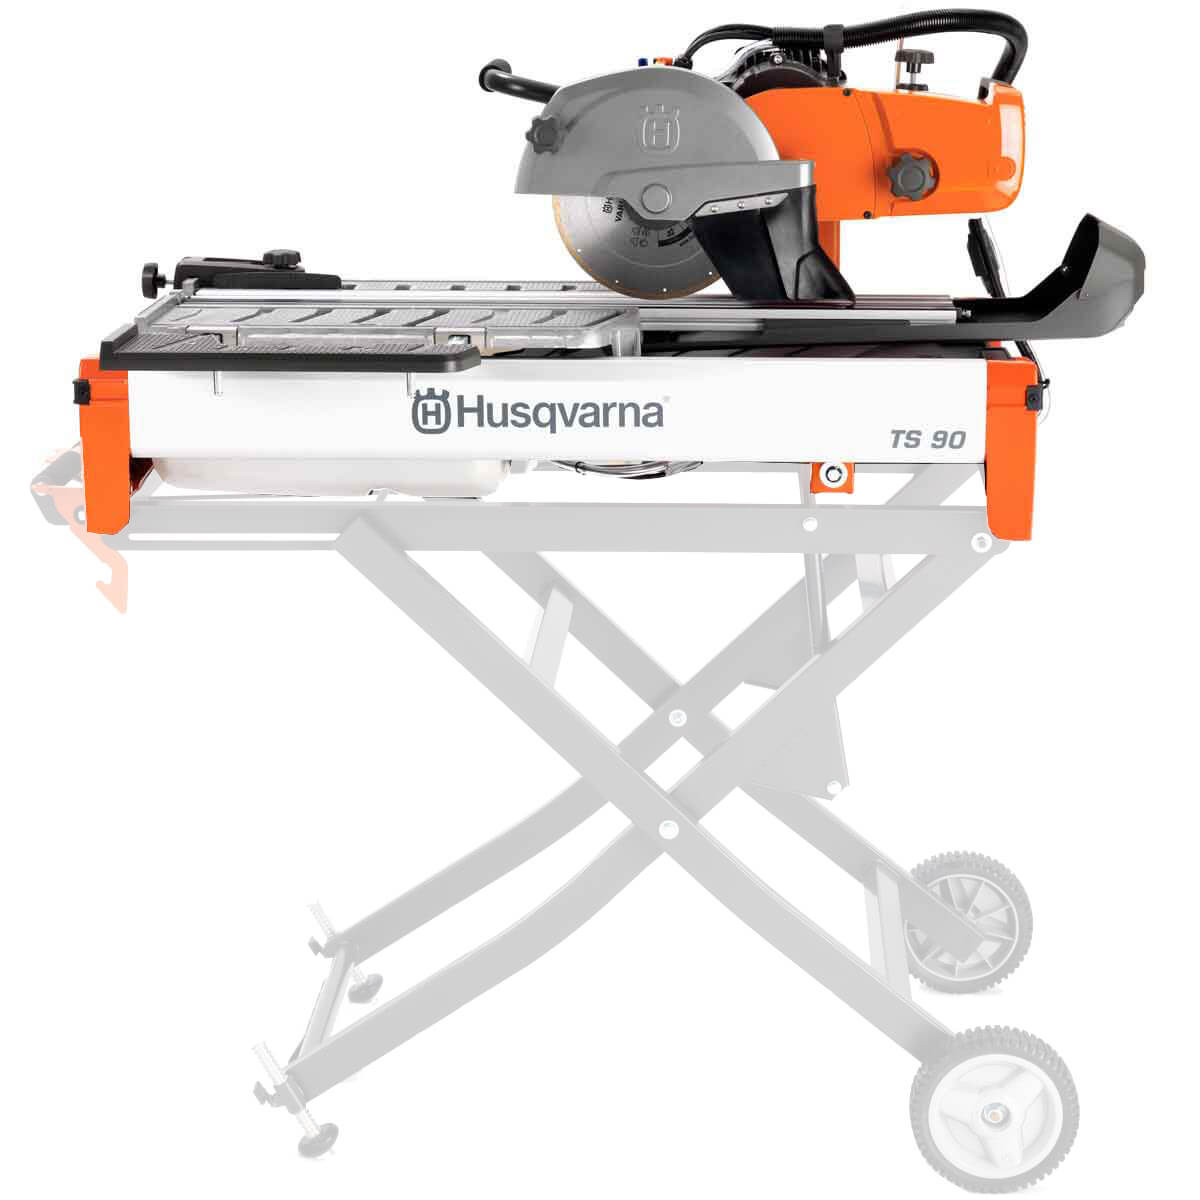 husqvarna ts90 tile saw side view 2